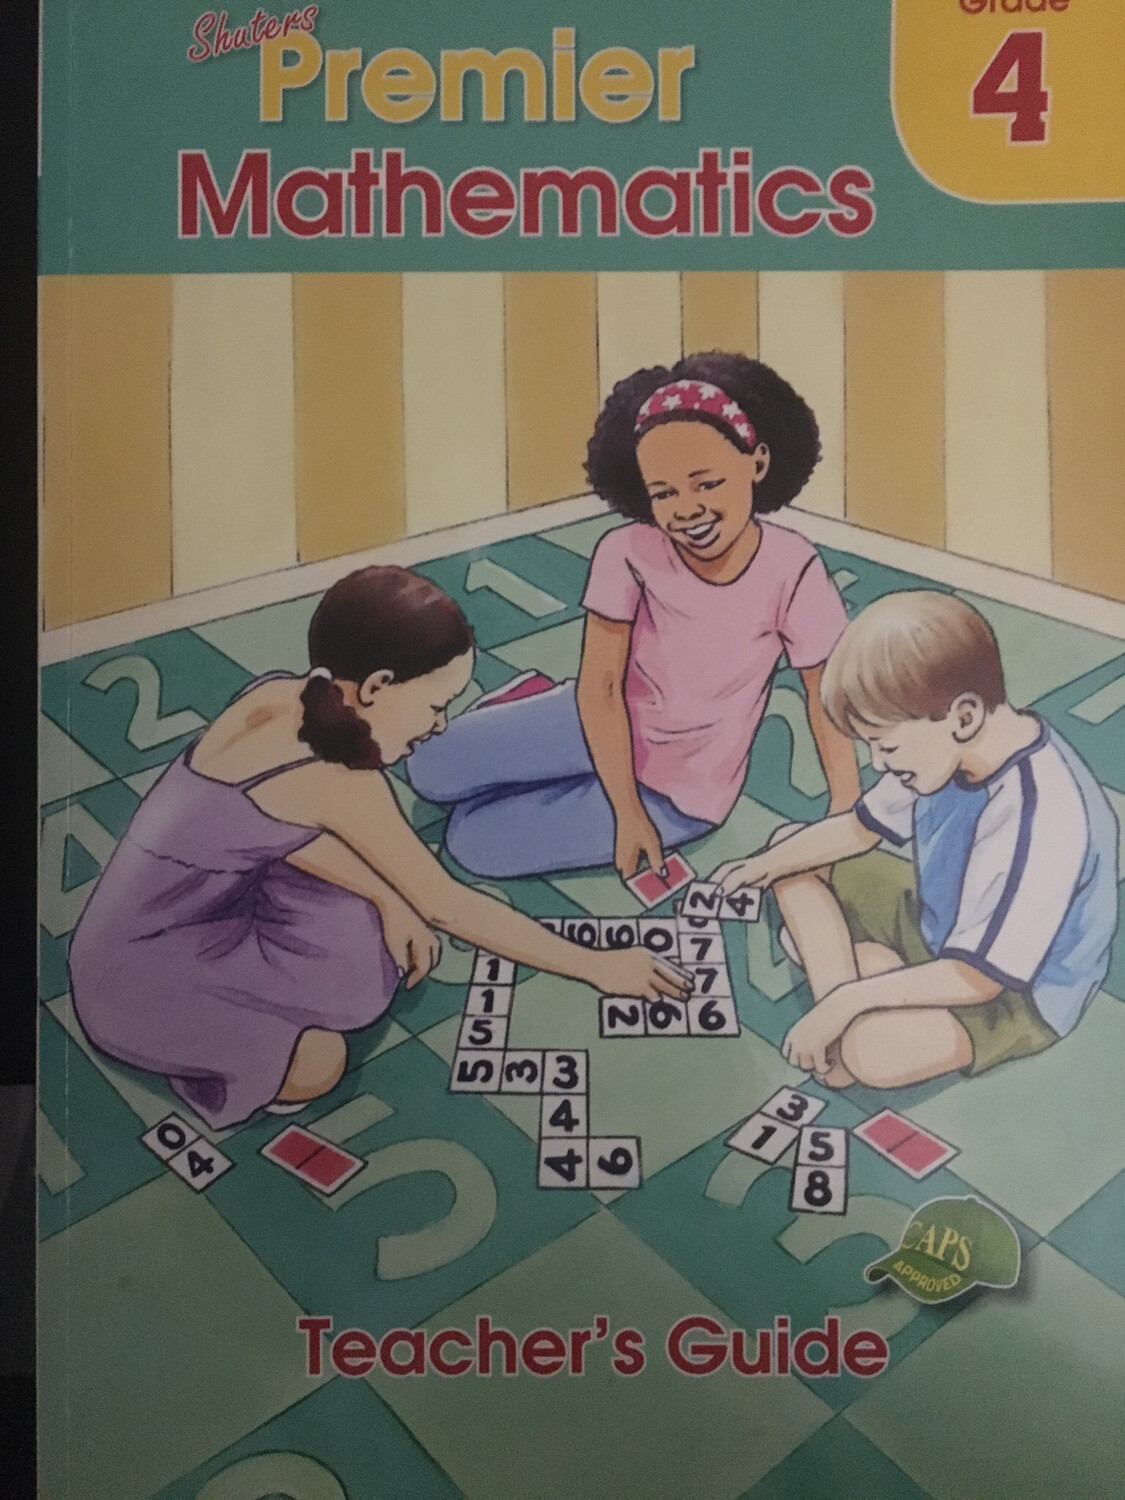 Grade 4 Premier Mathematics Teacher Guide